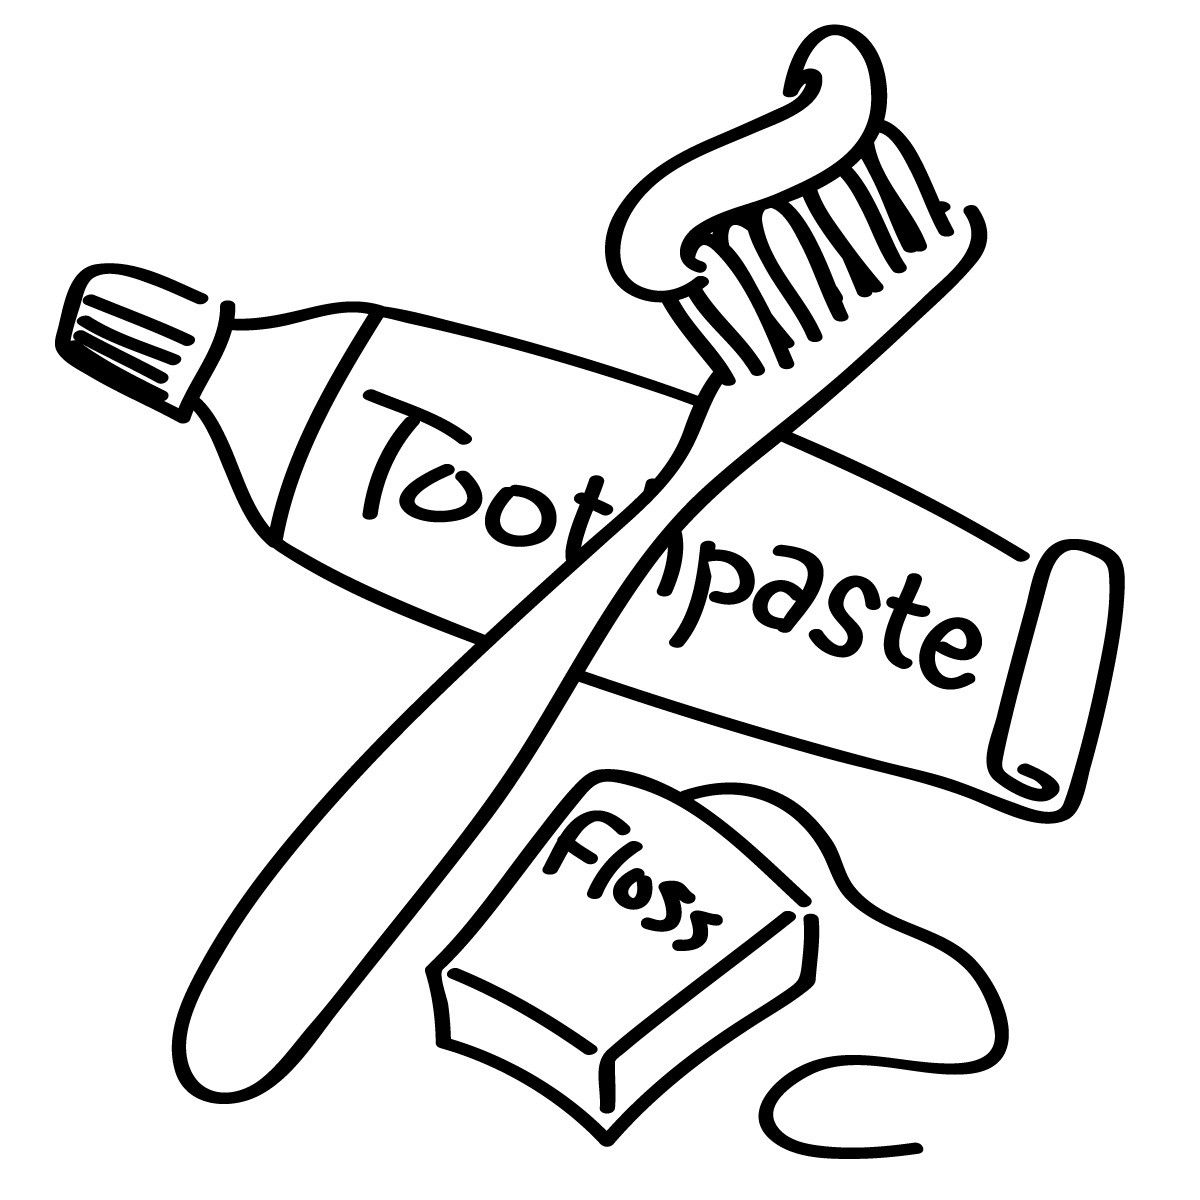 Dental Hygiene Coloring Pages For Kids Resume S Les